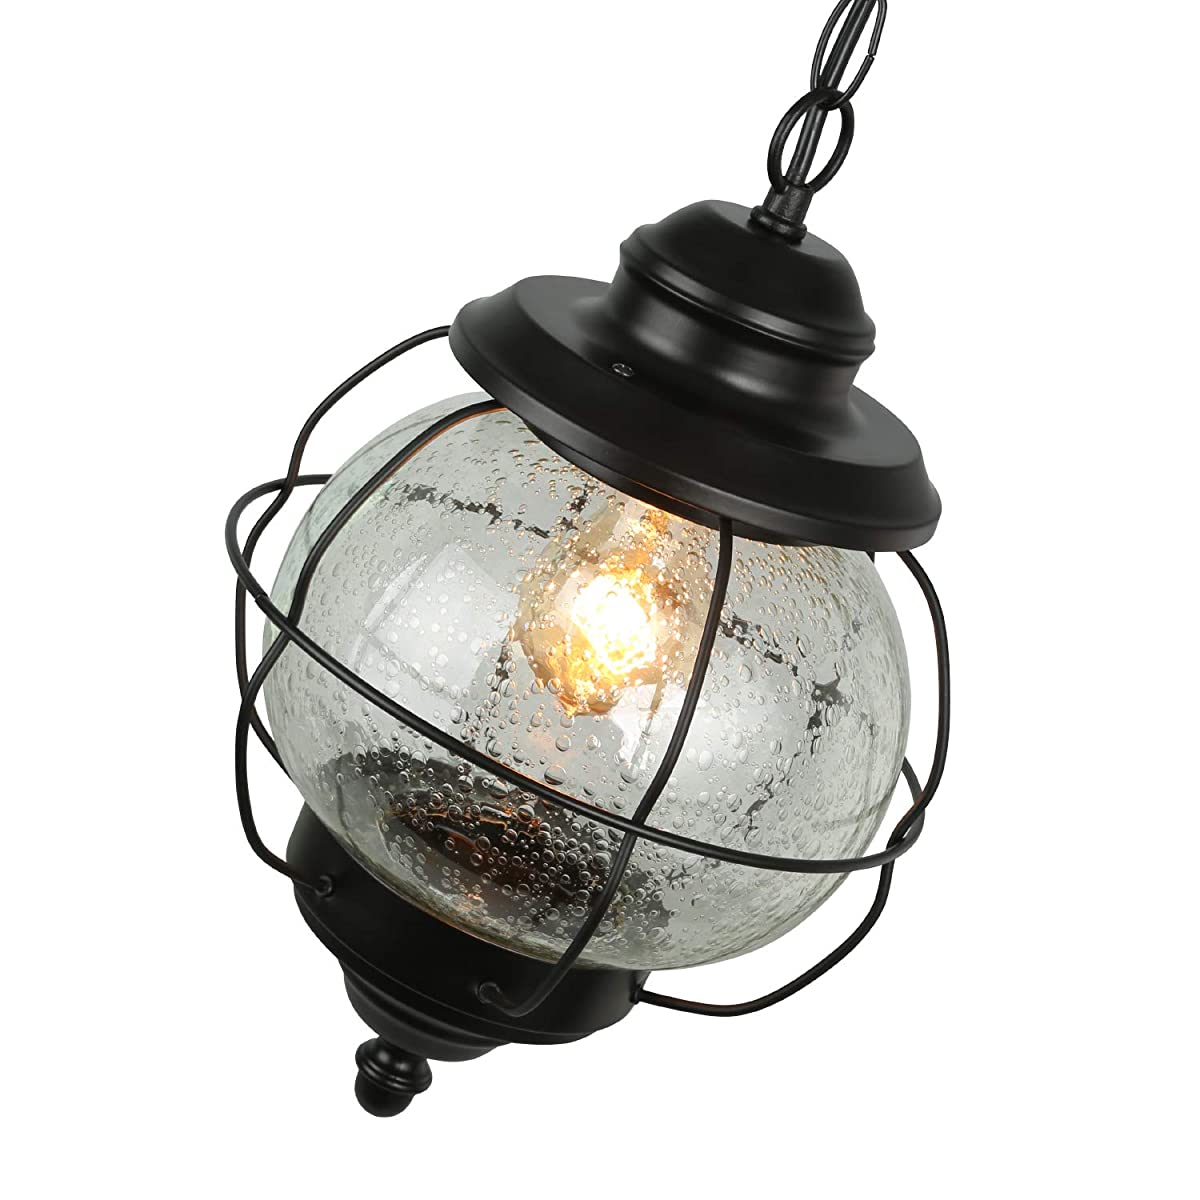 LALUZ Globe Hanging Pendant Light Fixture Outdoor Ceiling Lighting with Seeded Glass Shade